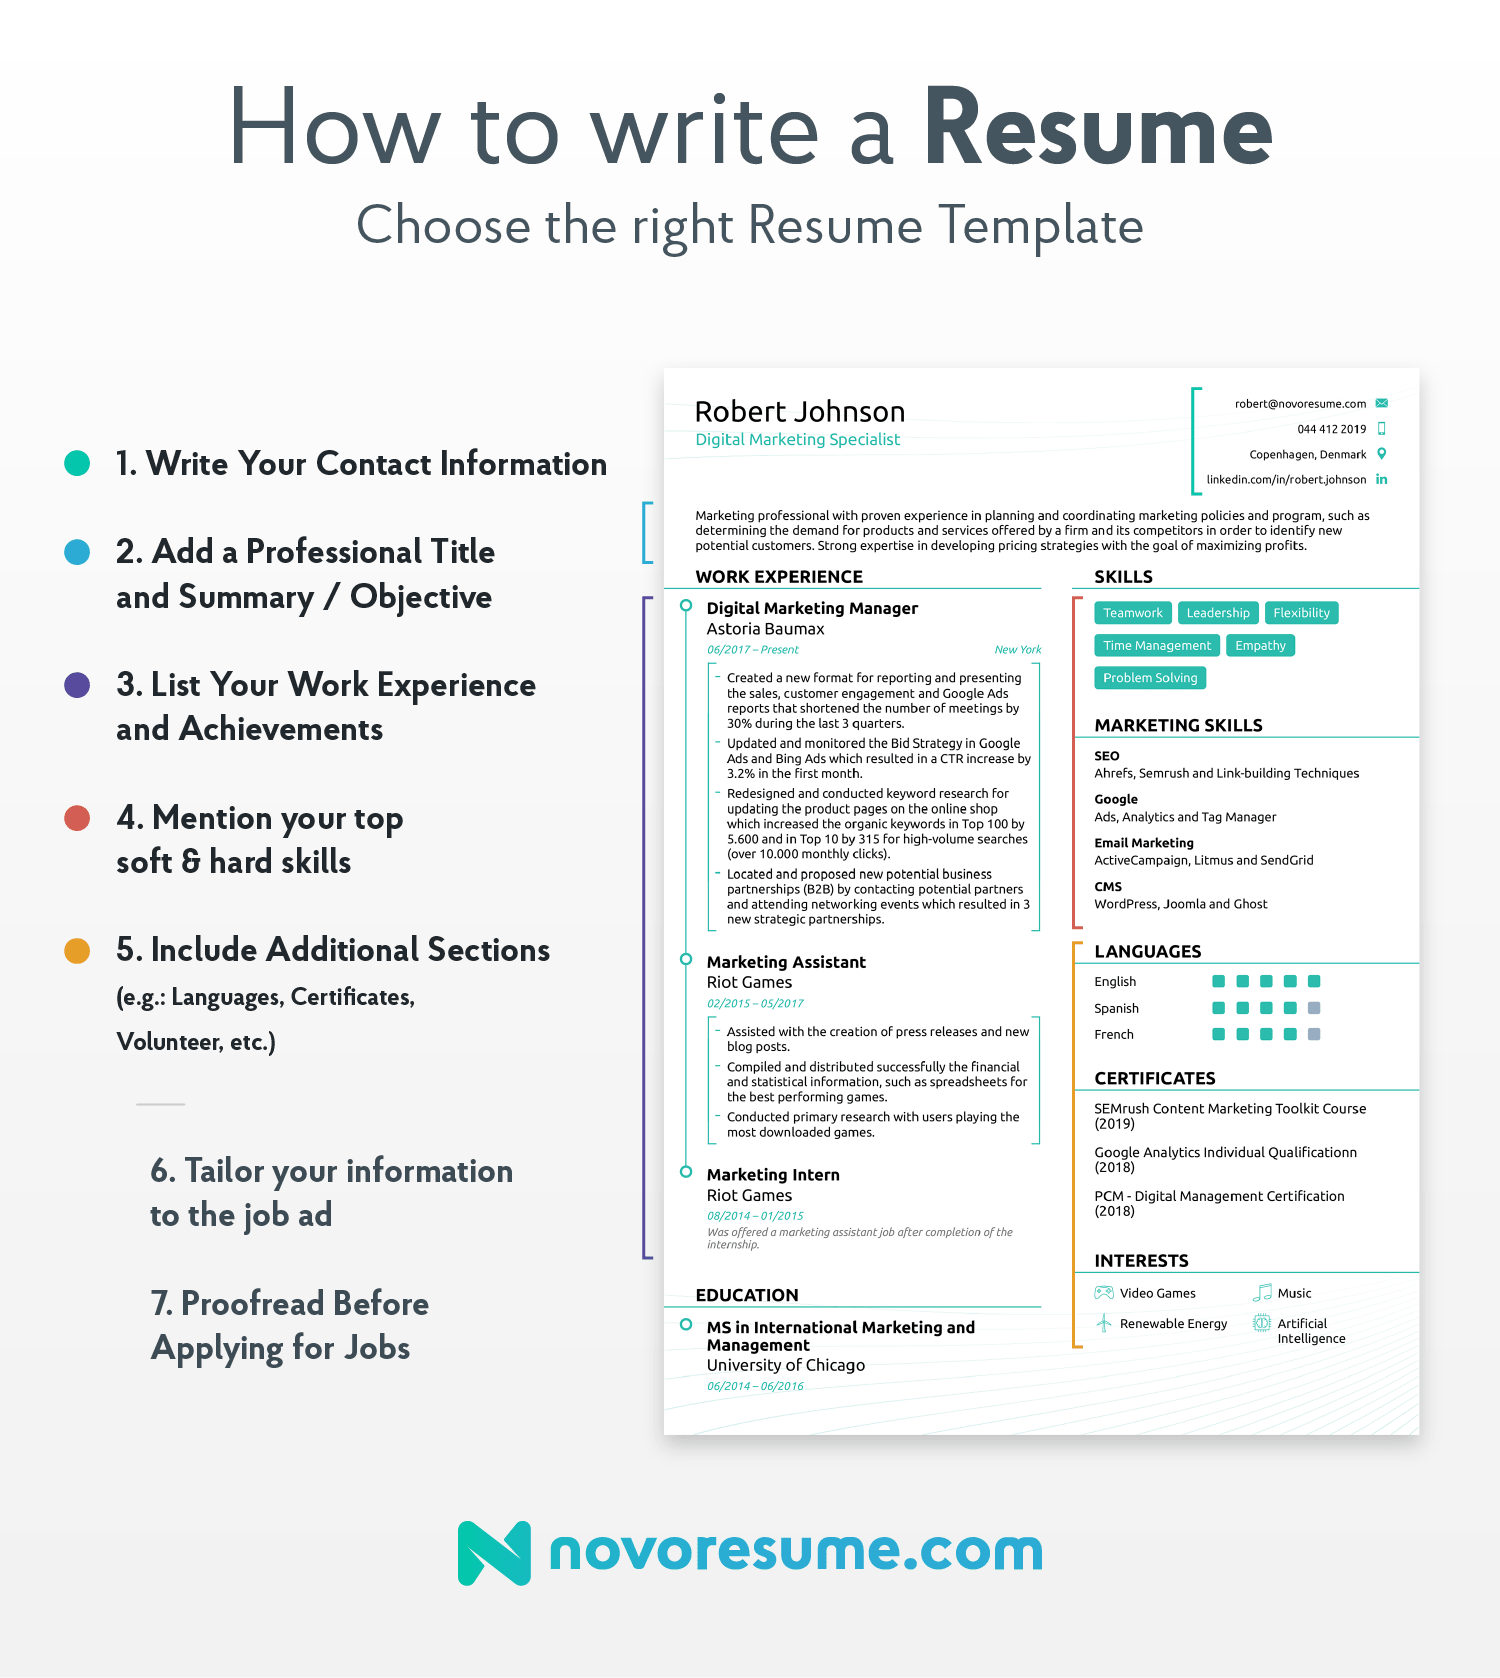 How To Write A Resume  Resume Guide